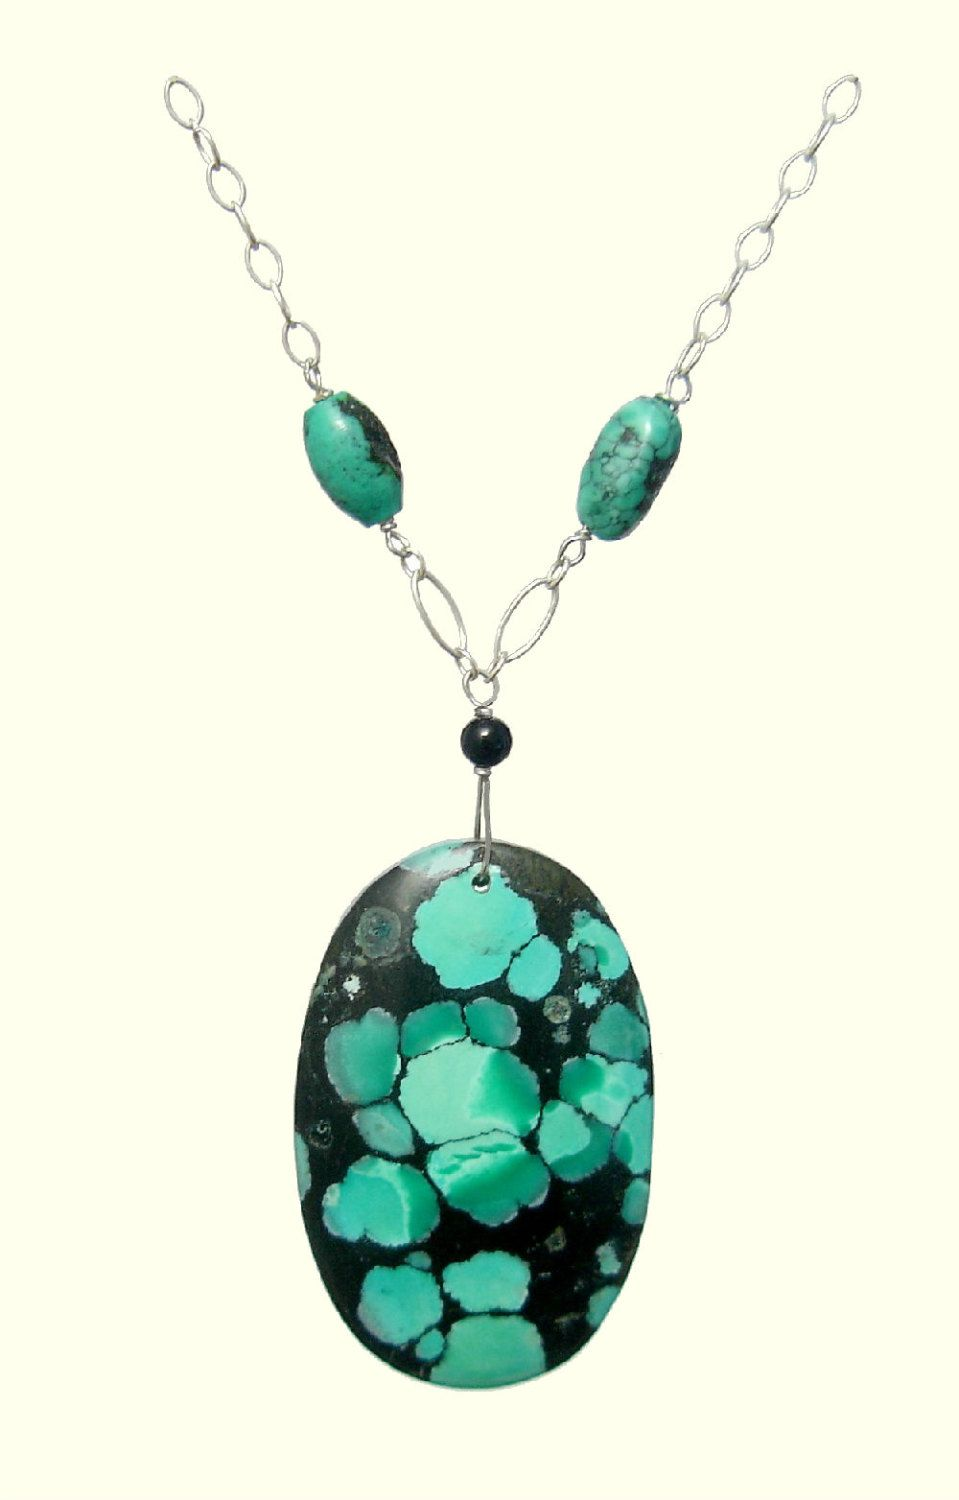 Black green oval turquoise necklace natural stones 925 silver black green oval turquoise necklace natural stones 925 silver necklace healing protection scorpio aloadofball Image collections